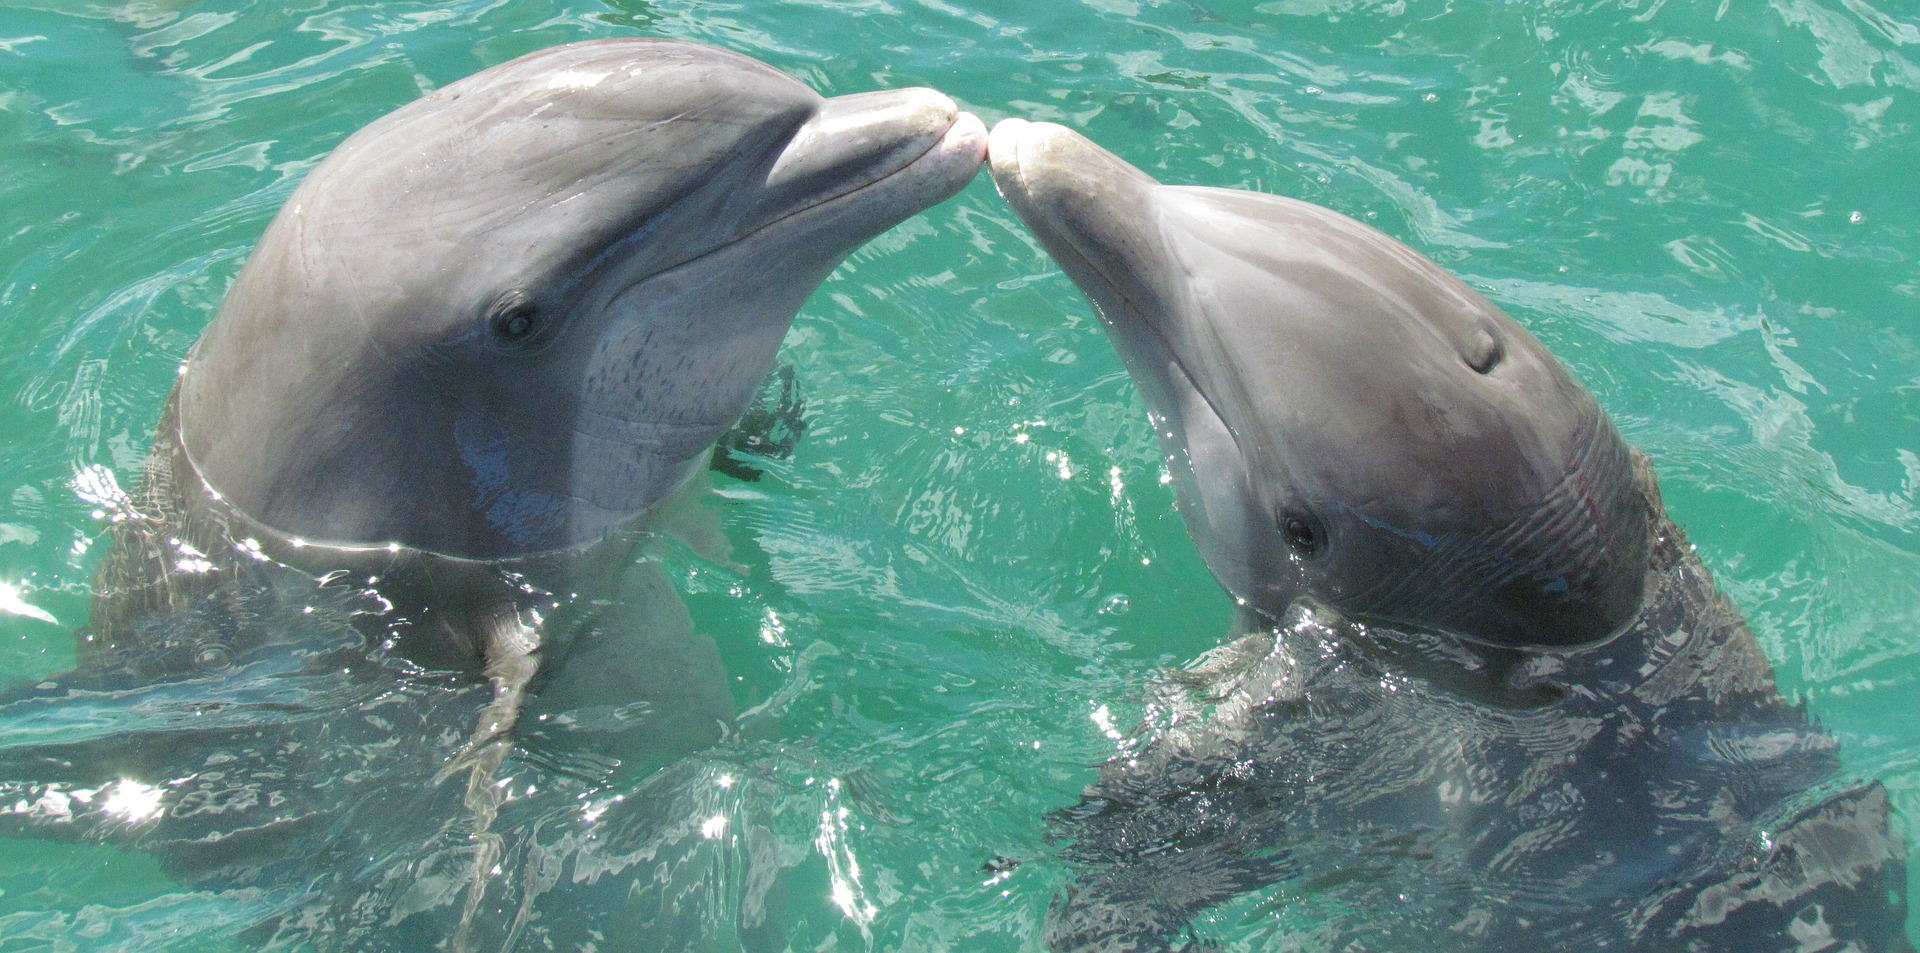 Two bottle nose dolphins: Dolphins in captivity